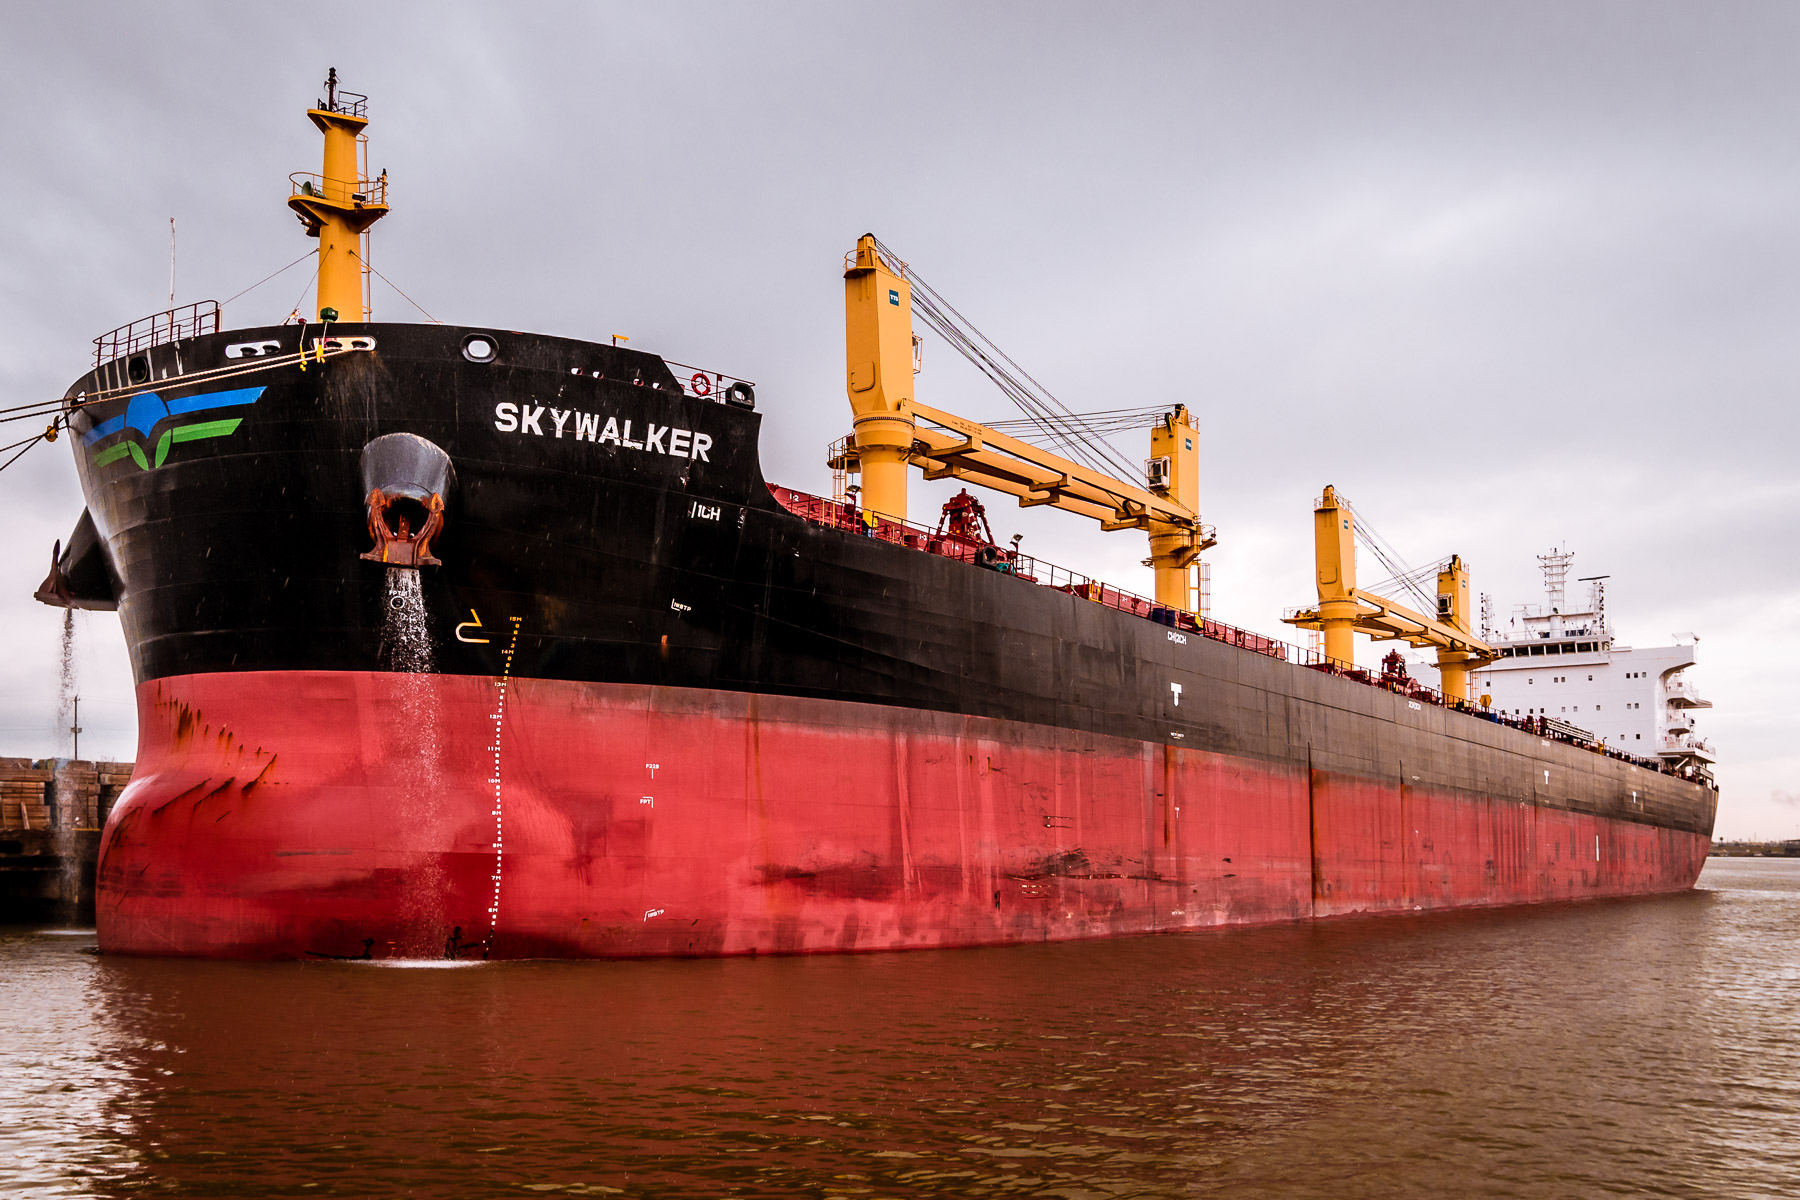 The bulk carrier Skywalker—undoubtedly named by a Star Wars fan—lies docked in the Port of Houston, Texas.